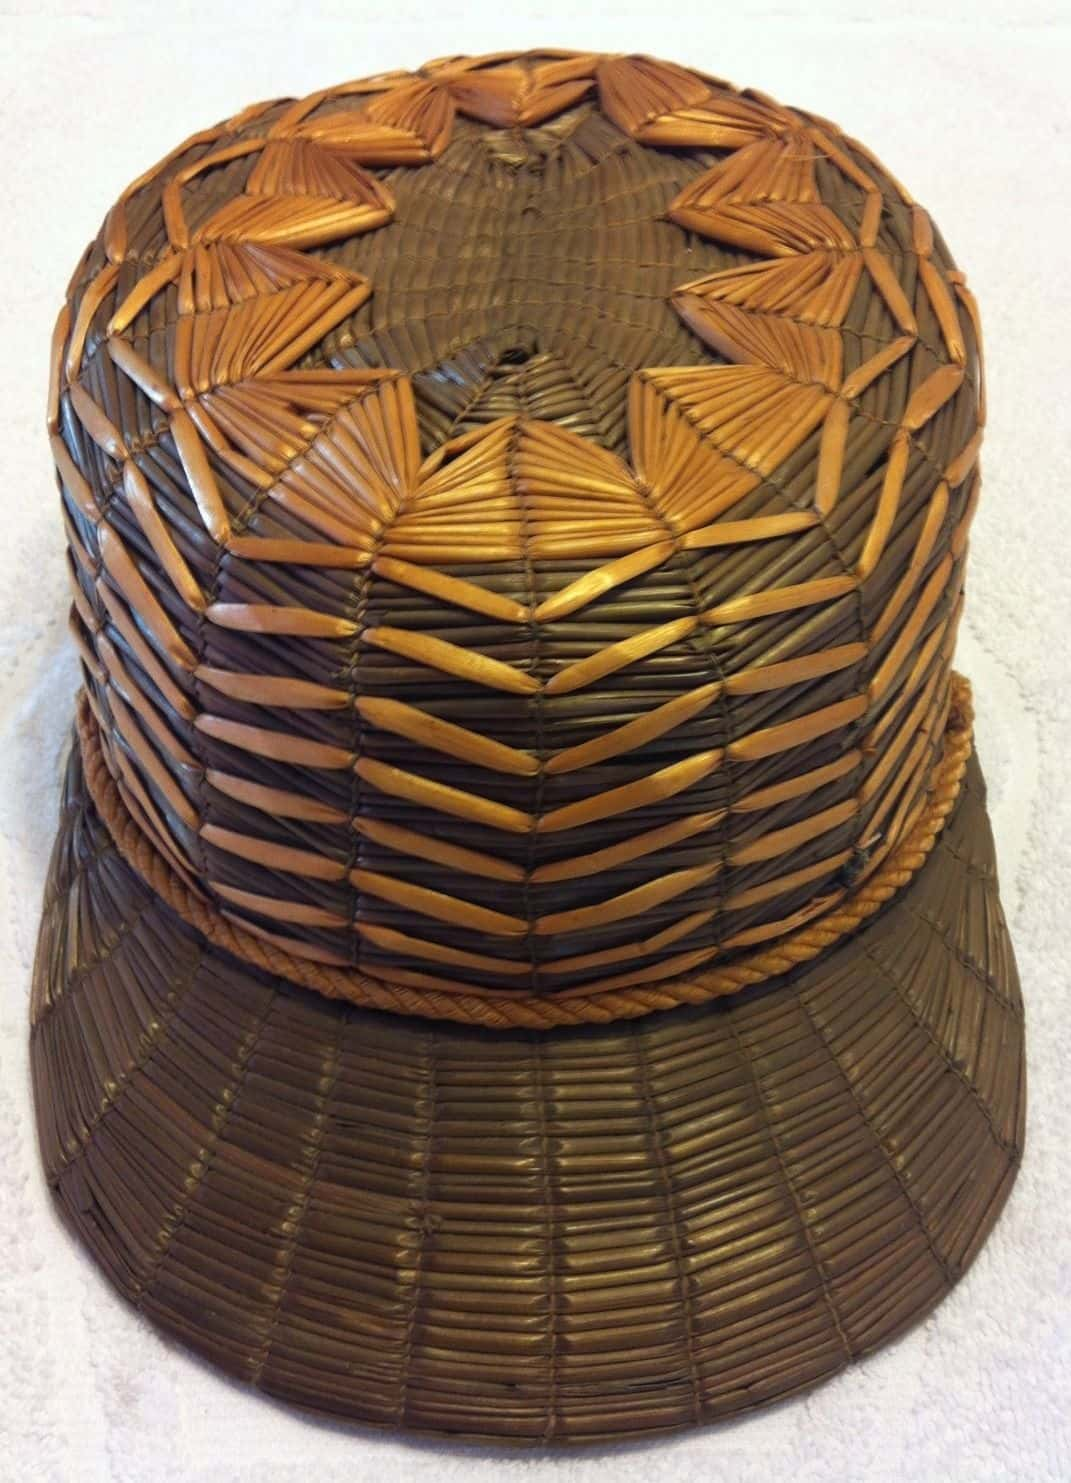 Yeddo-hat-courtesy-The-Straw-Shop-Collection